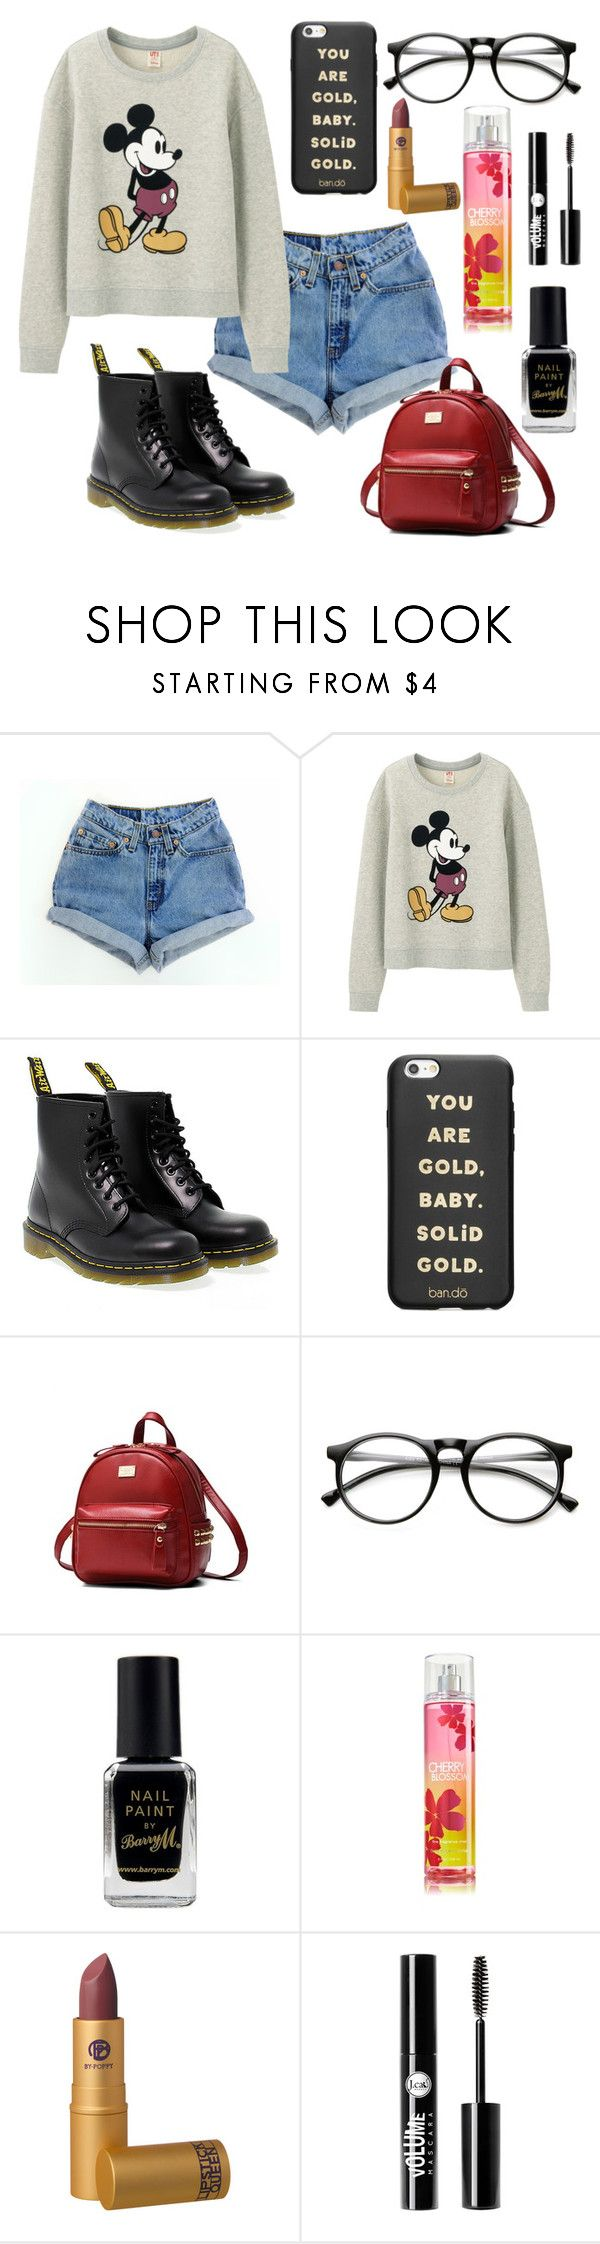 """Untitled #518"" by dolrebeca ❤ liked on Polyvore featuring Levi's, Uniqlo, Dr. Martens, ban.do, Barry M, Lipstick Queen and Charlotte Russe"